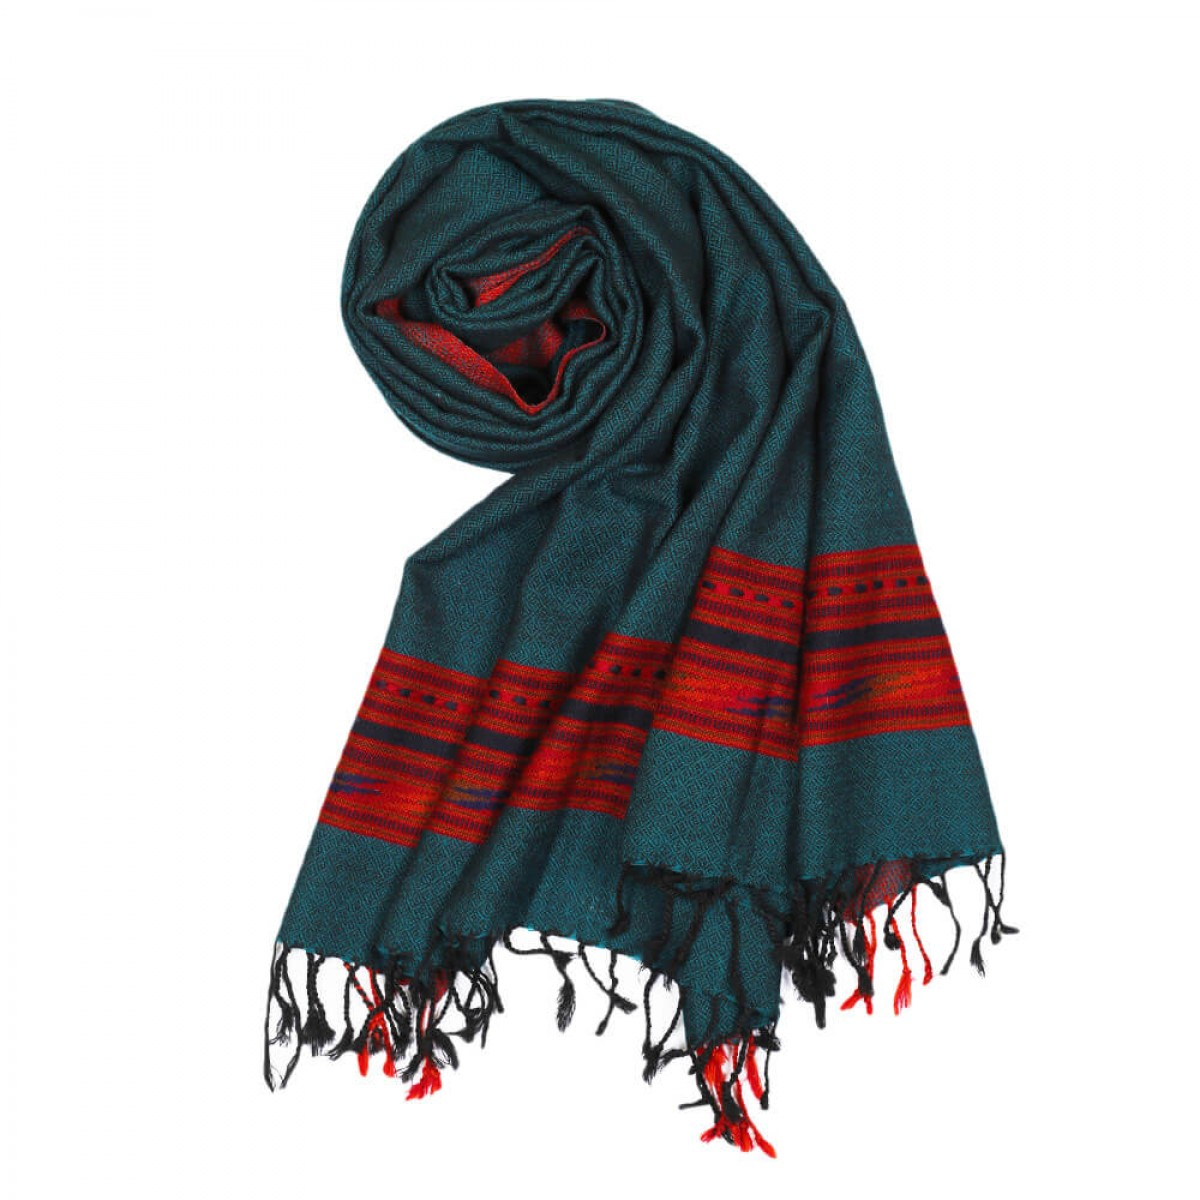 Himalayan Vibes Woolen Scarf - Teal & Red